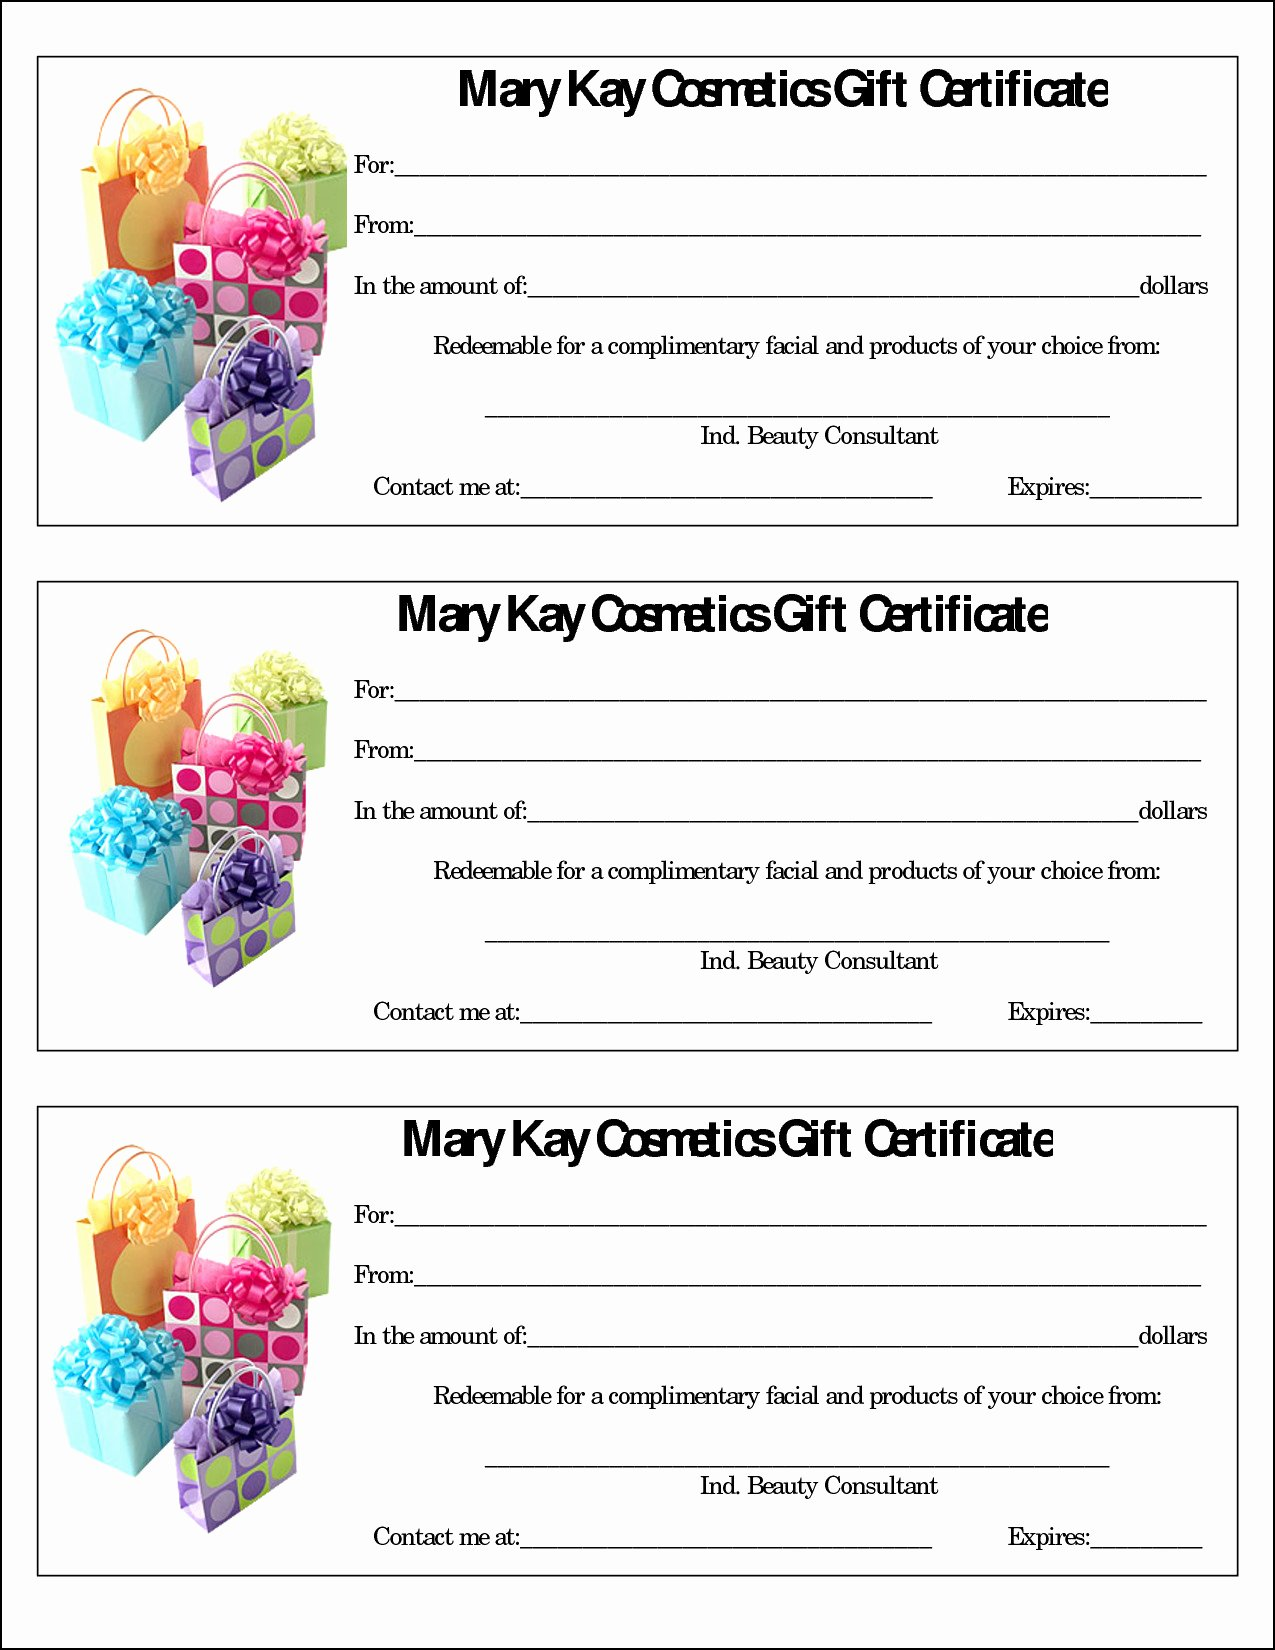 Scentsy Gift Certificate Template Fresh 30 New Scentsy Gift Certificate Template